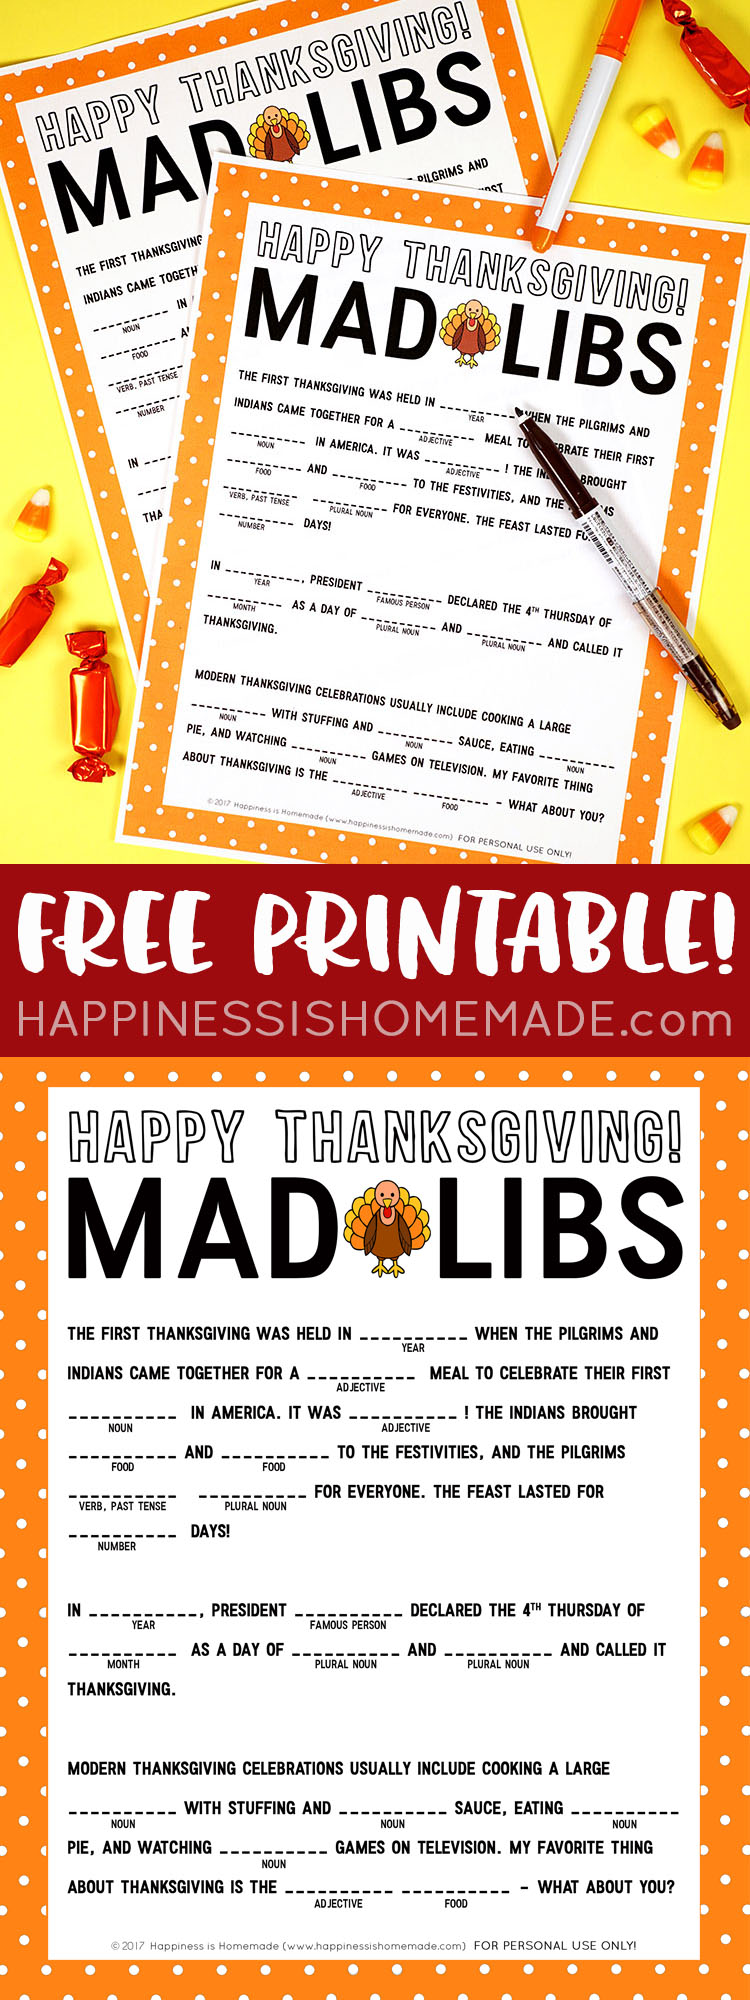 It's just an image of Old Fashioned Mad Libs Free Printable